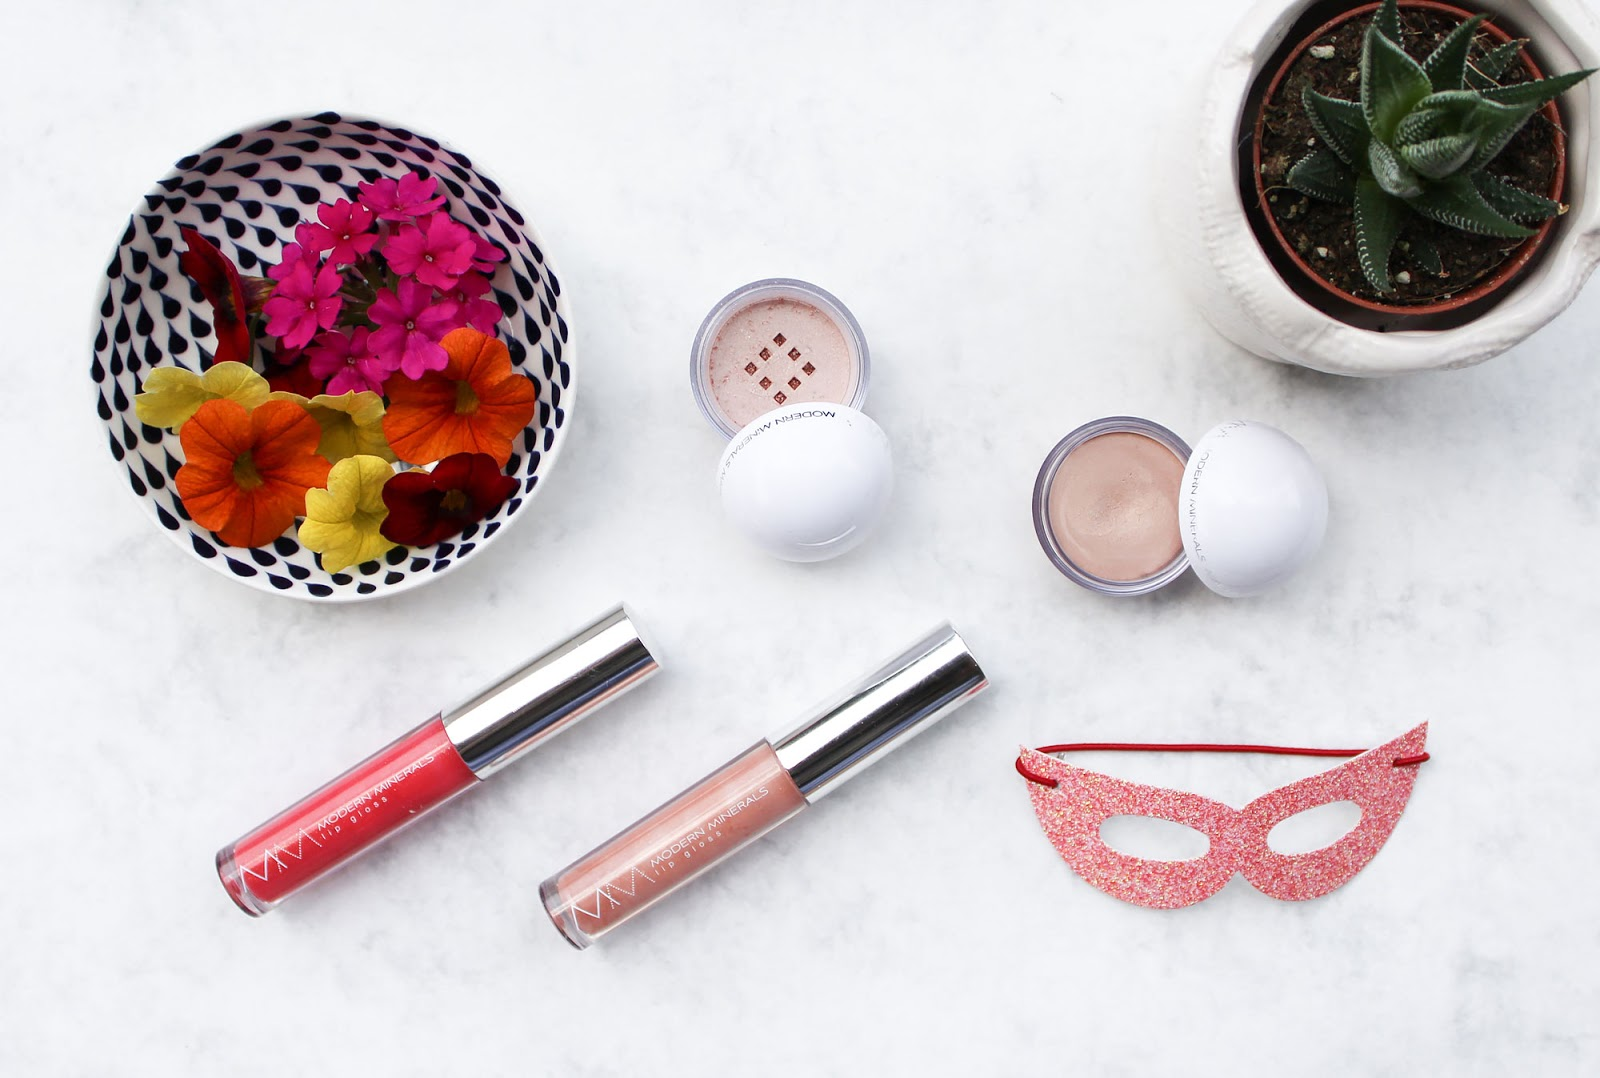 Modern minerals x lotus wei emotive makeup collection small bits modern minerals is a brand founded by diane read and when she met flower alchemist katie hess founder of lotus wei they together set out to take beauty to izmirmasajfo